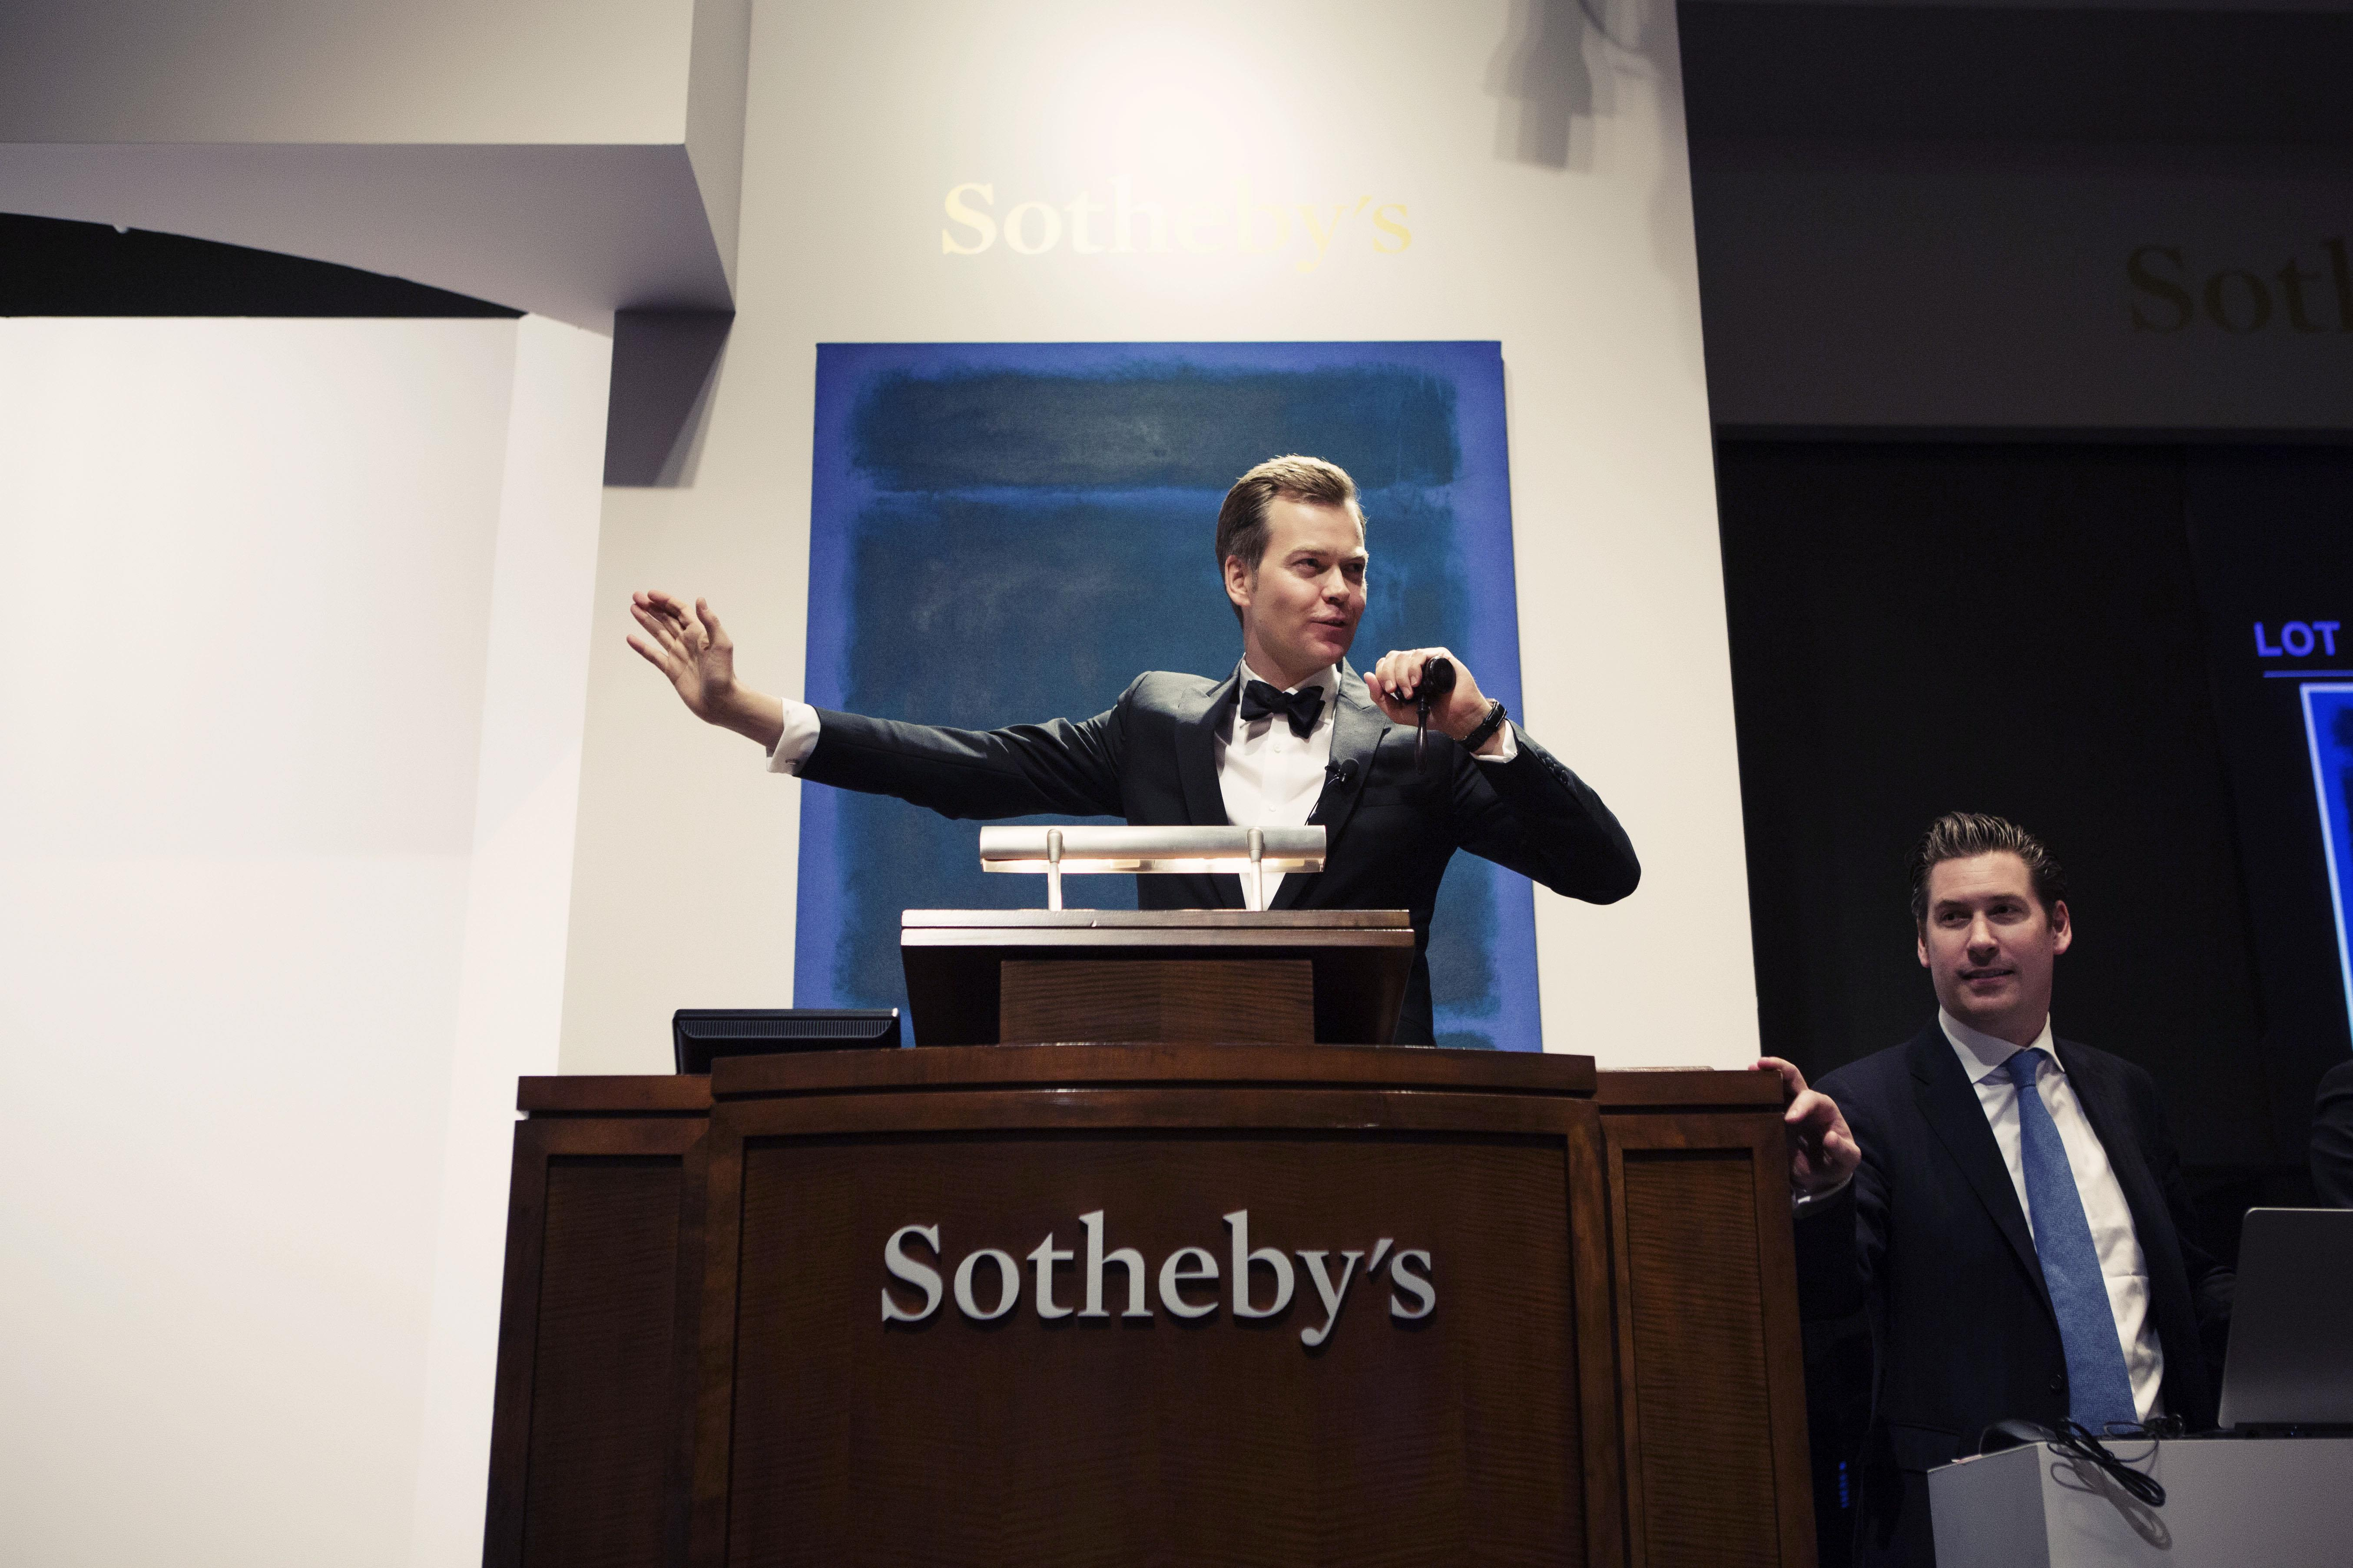 Auctioneer - Sotheby's Auction House